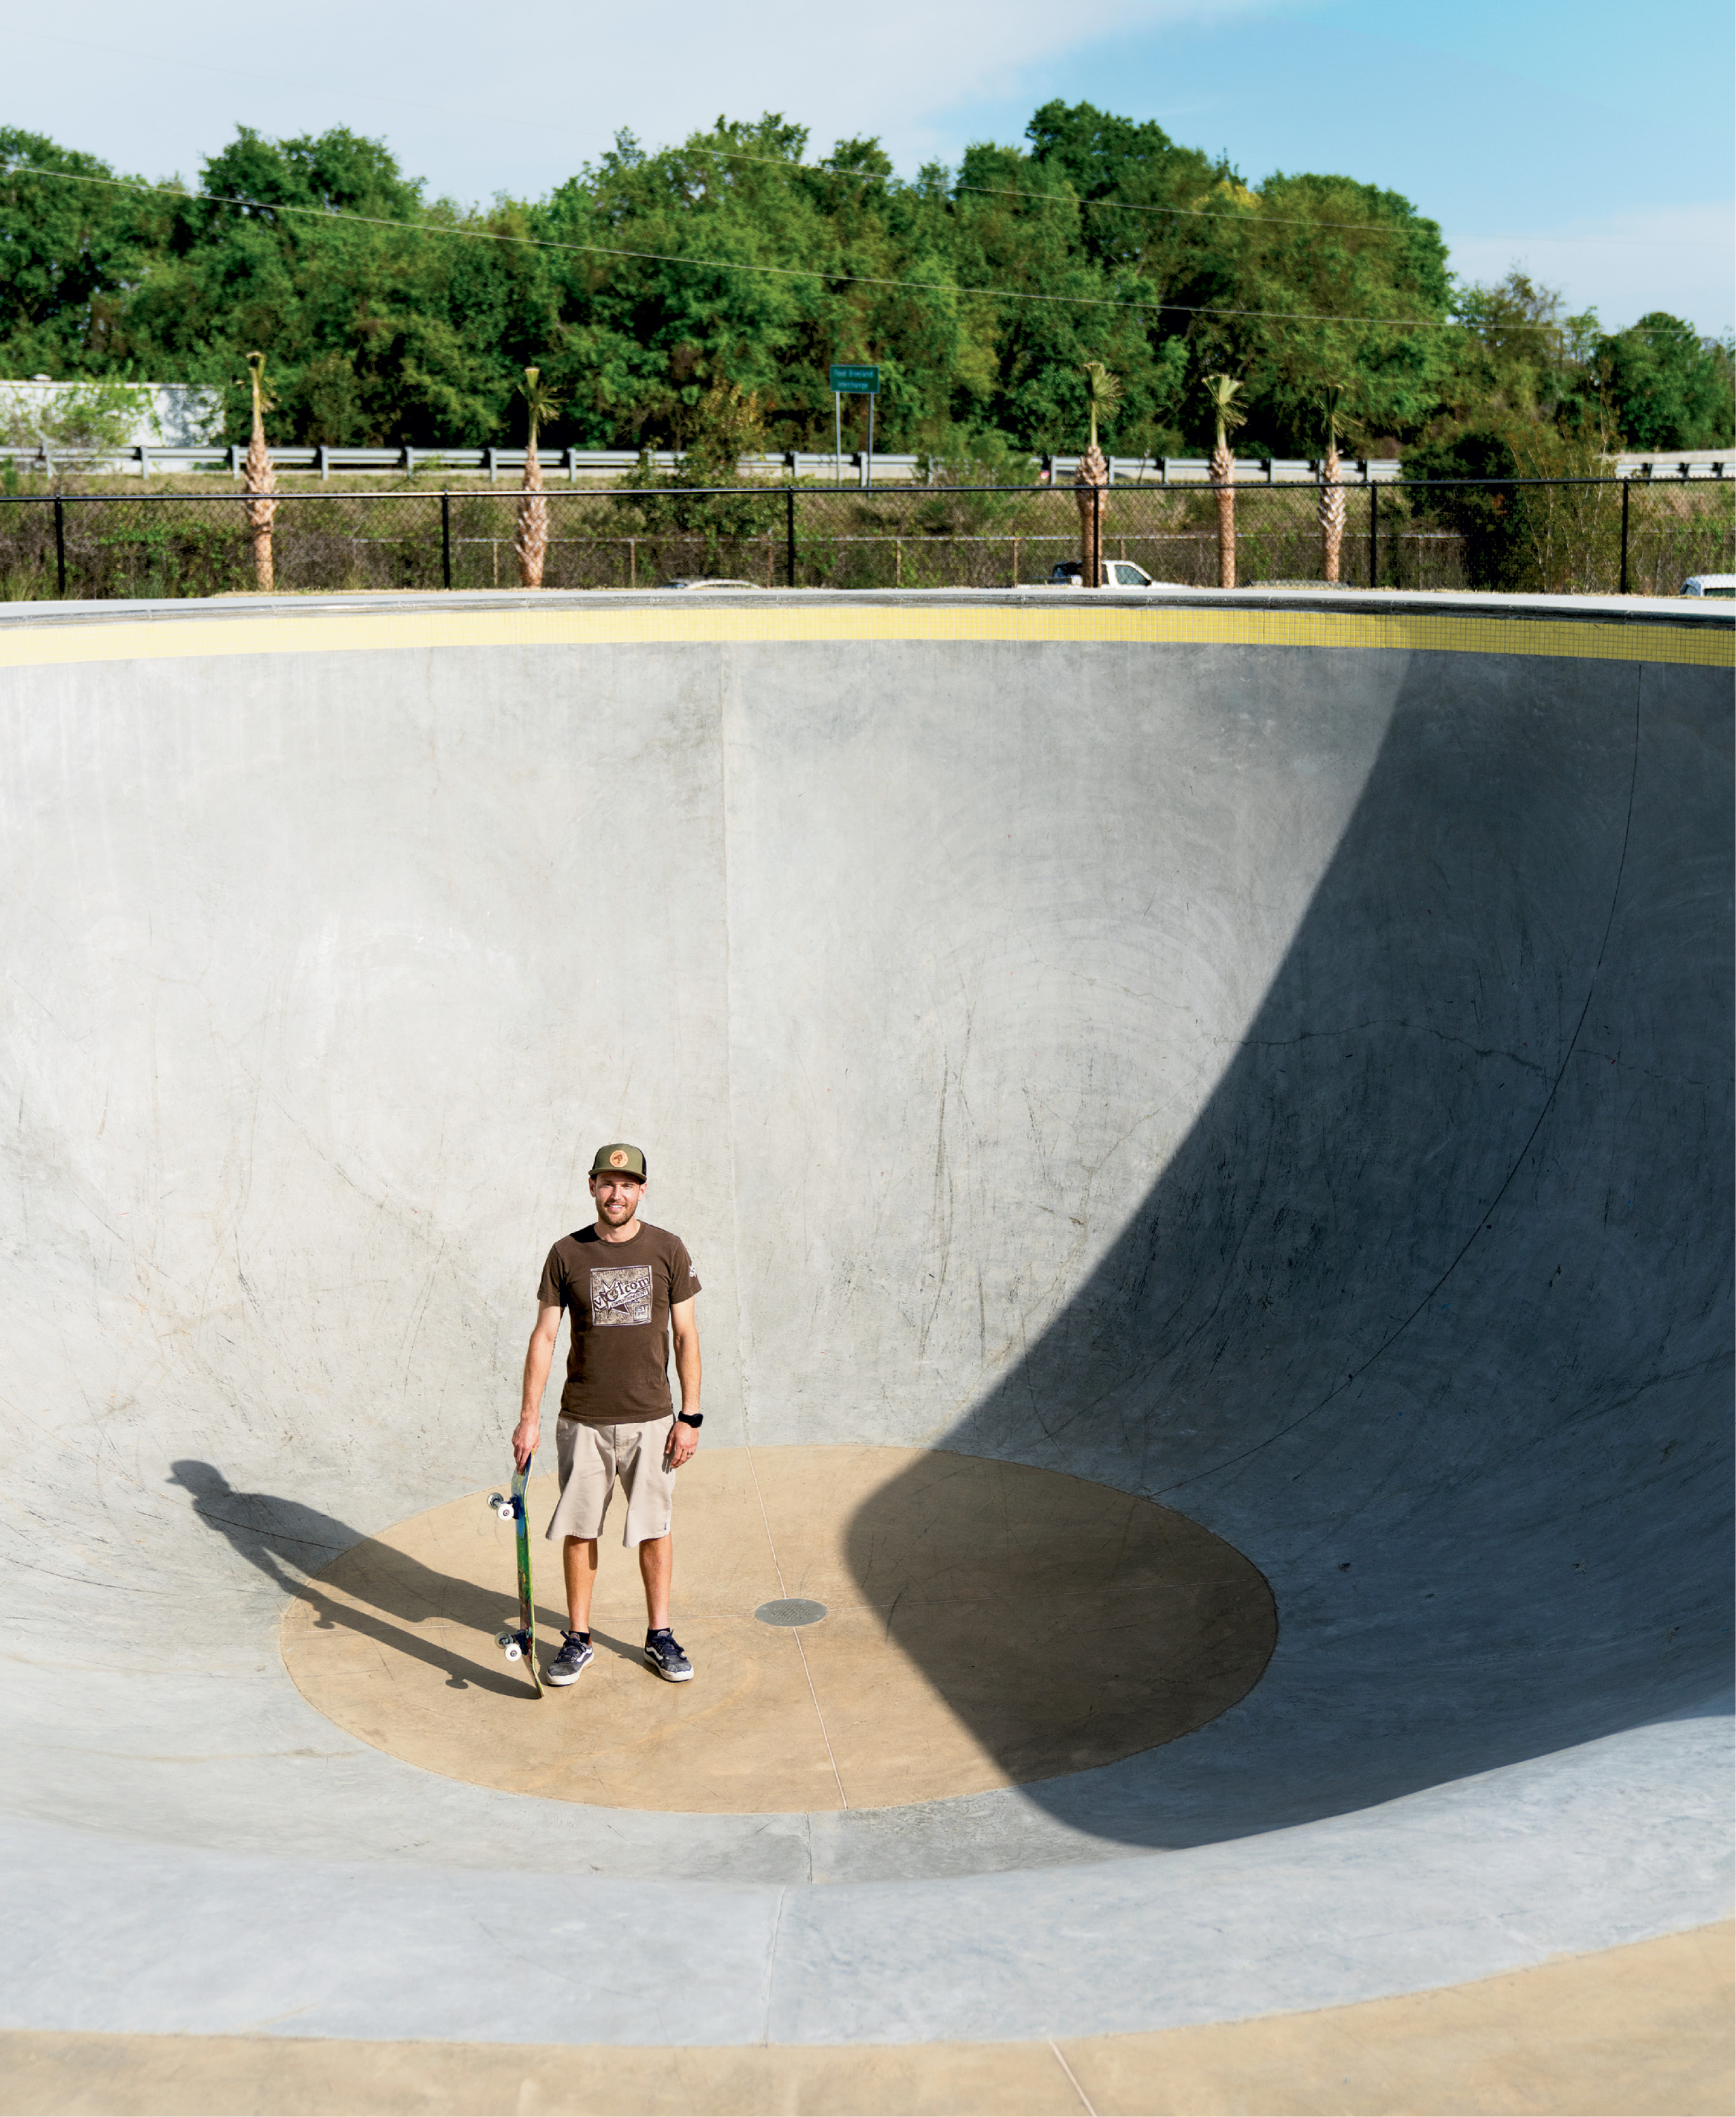 """Park manager Josh McFadden in the pro bowl; the avid skater says he found his """"dream job"""" when he was hired to help launch the park last fall. """"I love being fully immersed in skateboarding all day, every day,"""" the College of Charleston grad notes. """"This facility is quickly becoming a breeding ground for the next generation of skaters. It serves as a safe place where young people can come and practice their skills and interact with their peers."""""""